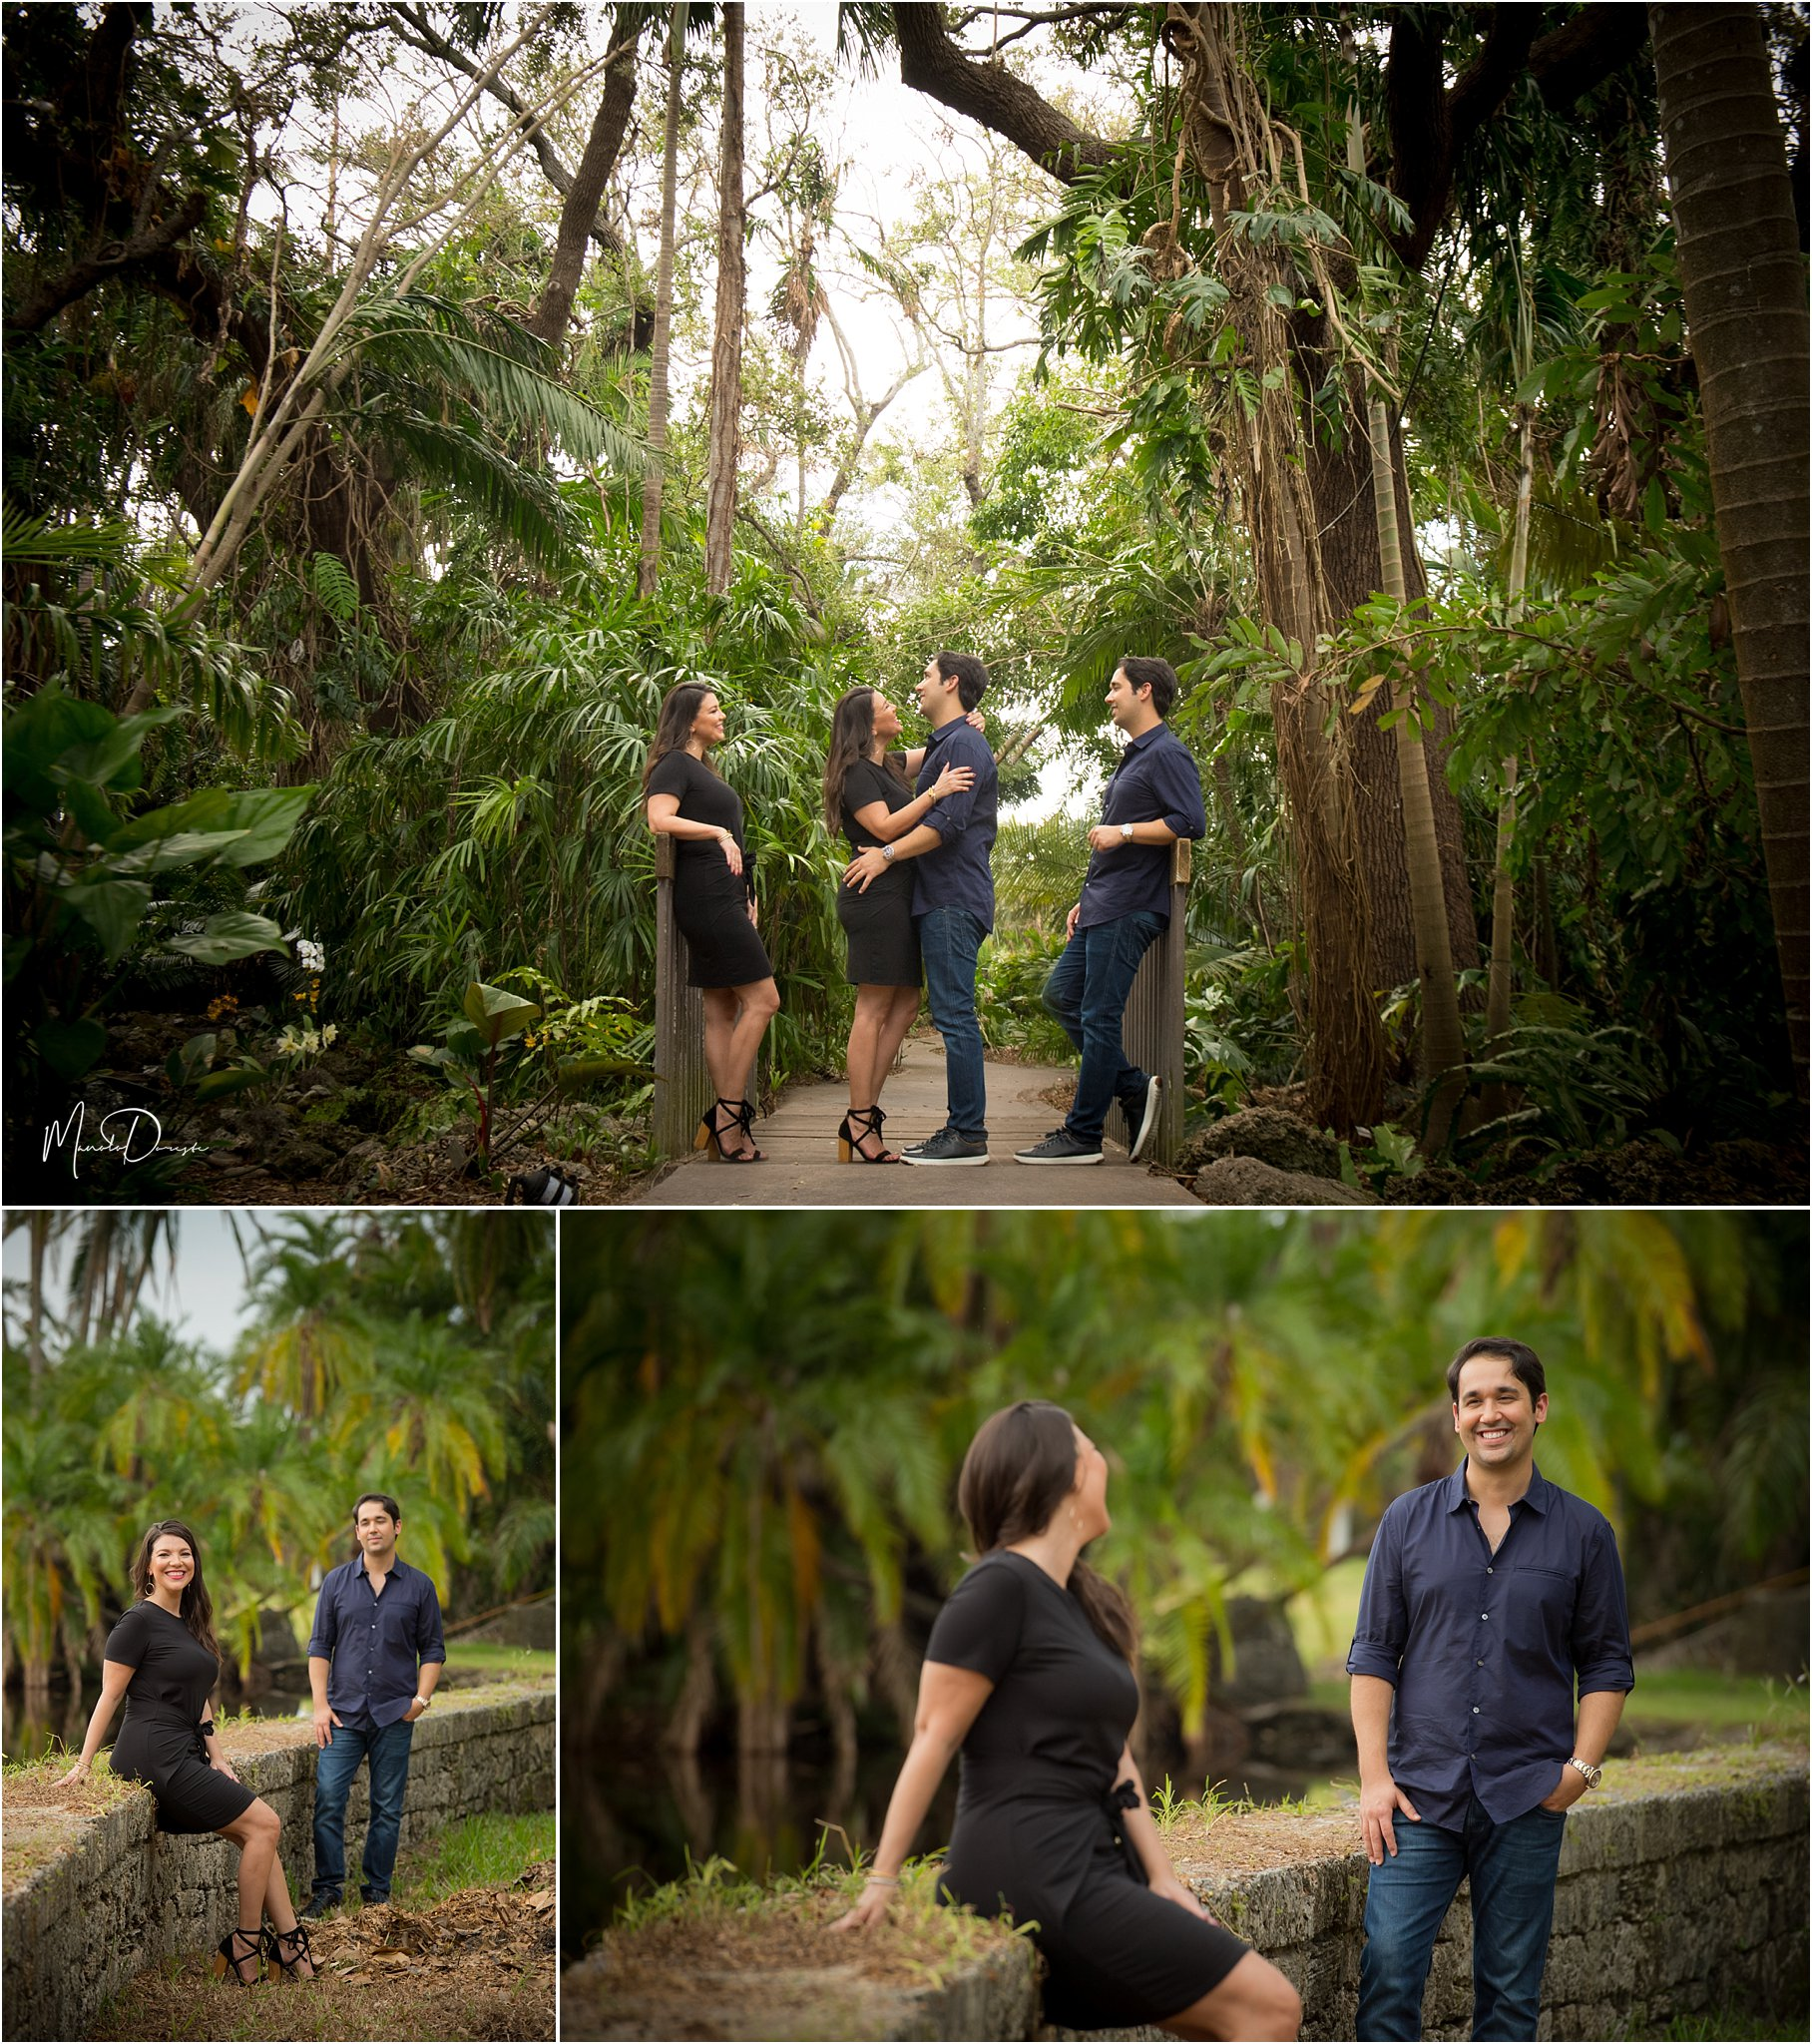 0225_ManoloDoreste_InFocusStudios_Wedding_Family_Photography_Miami_MiamiPhotographer.jpg